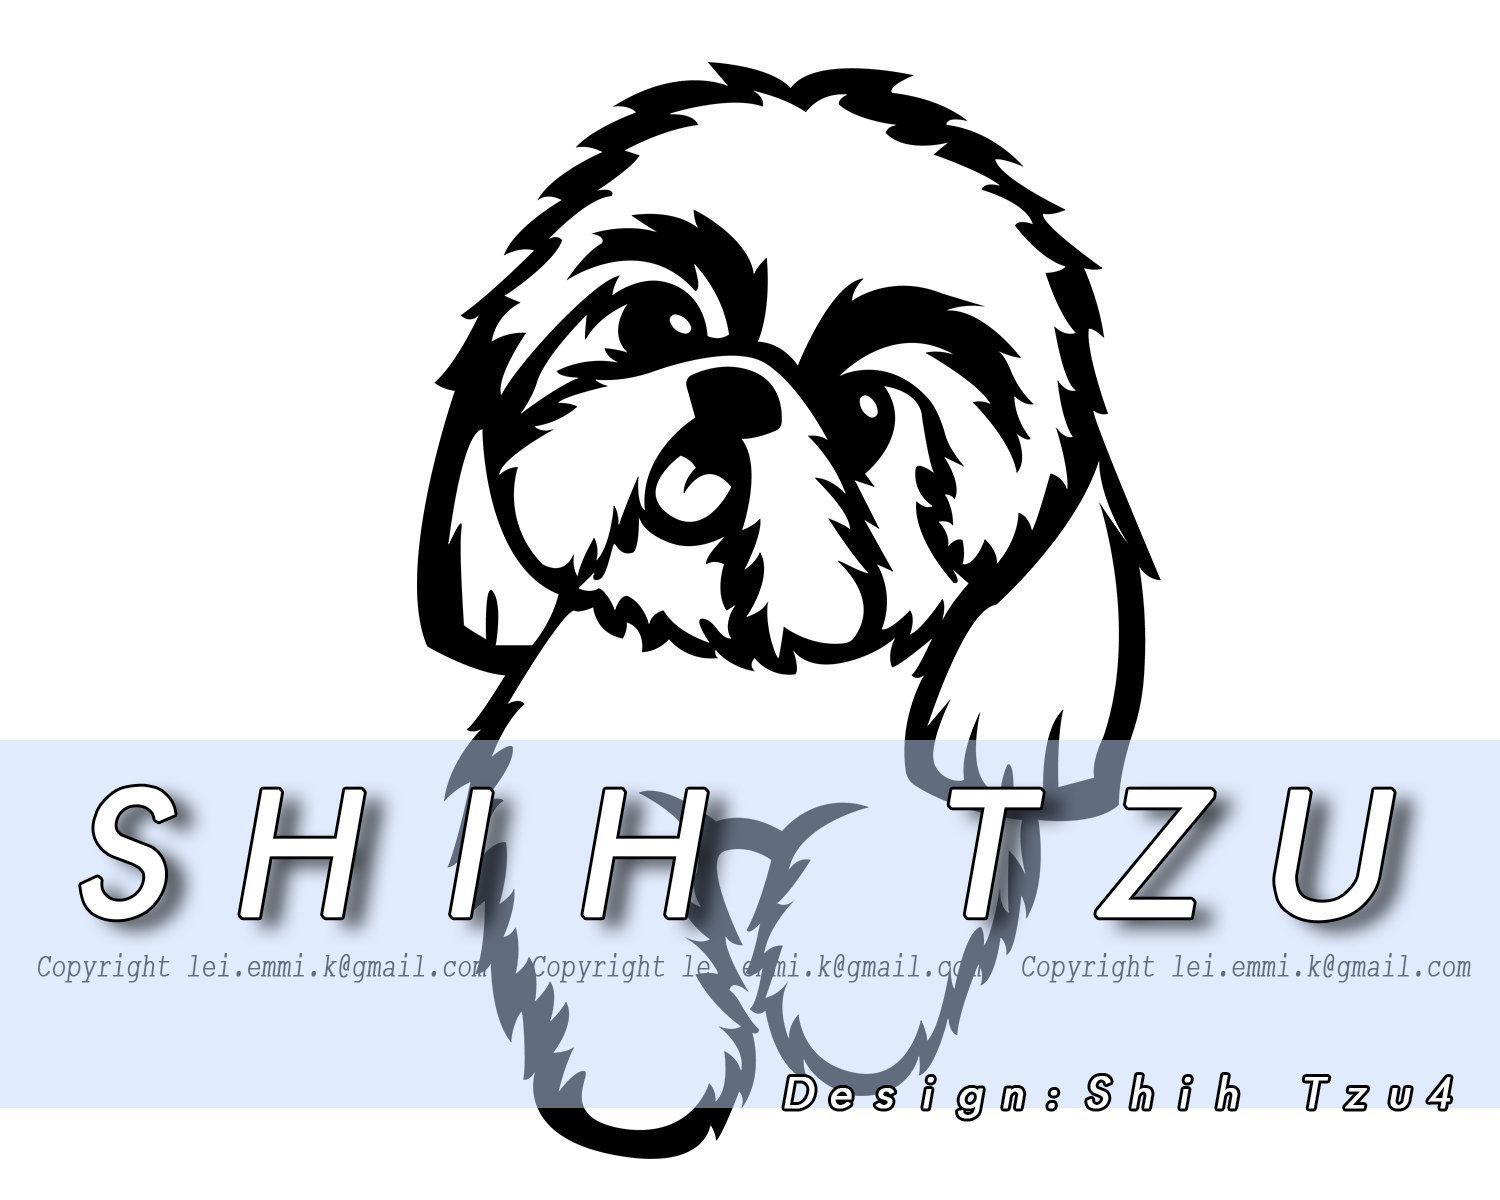 Shih Tzu Clipart Shih Tzu Svg Dog Svg Cute Dog Svg Cute Shih Tzu Dog Svg Dog Clipart Small Dog Vect In 2021 Personalized Pet Gifts Dog Outline Personalized Pet